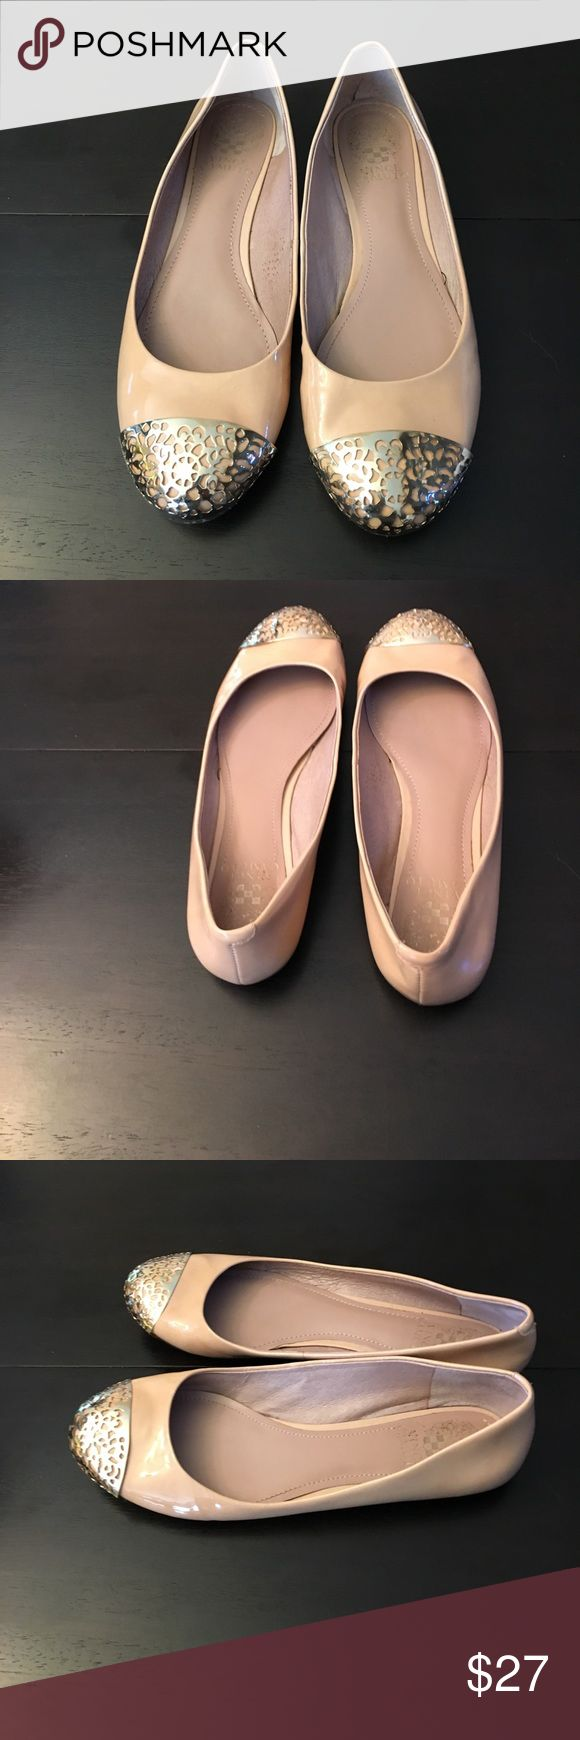 Vince Camuto Nude Flat With Gold Toe Detail. Nude Vince Camuto Flats With Golden Toe Accents. Size 7 1/2. Please See Ink Mark Shown In Pics. Thank You!🌞 Vince Camuto Shoes Flats & Loafers